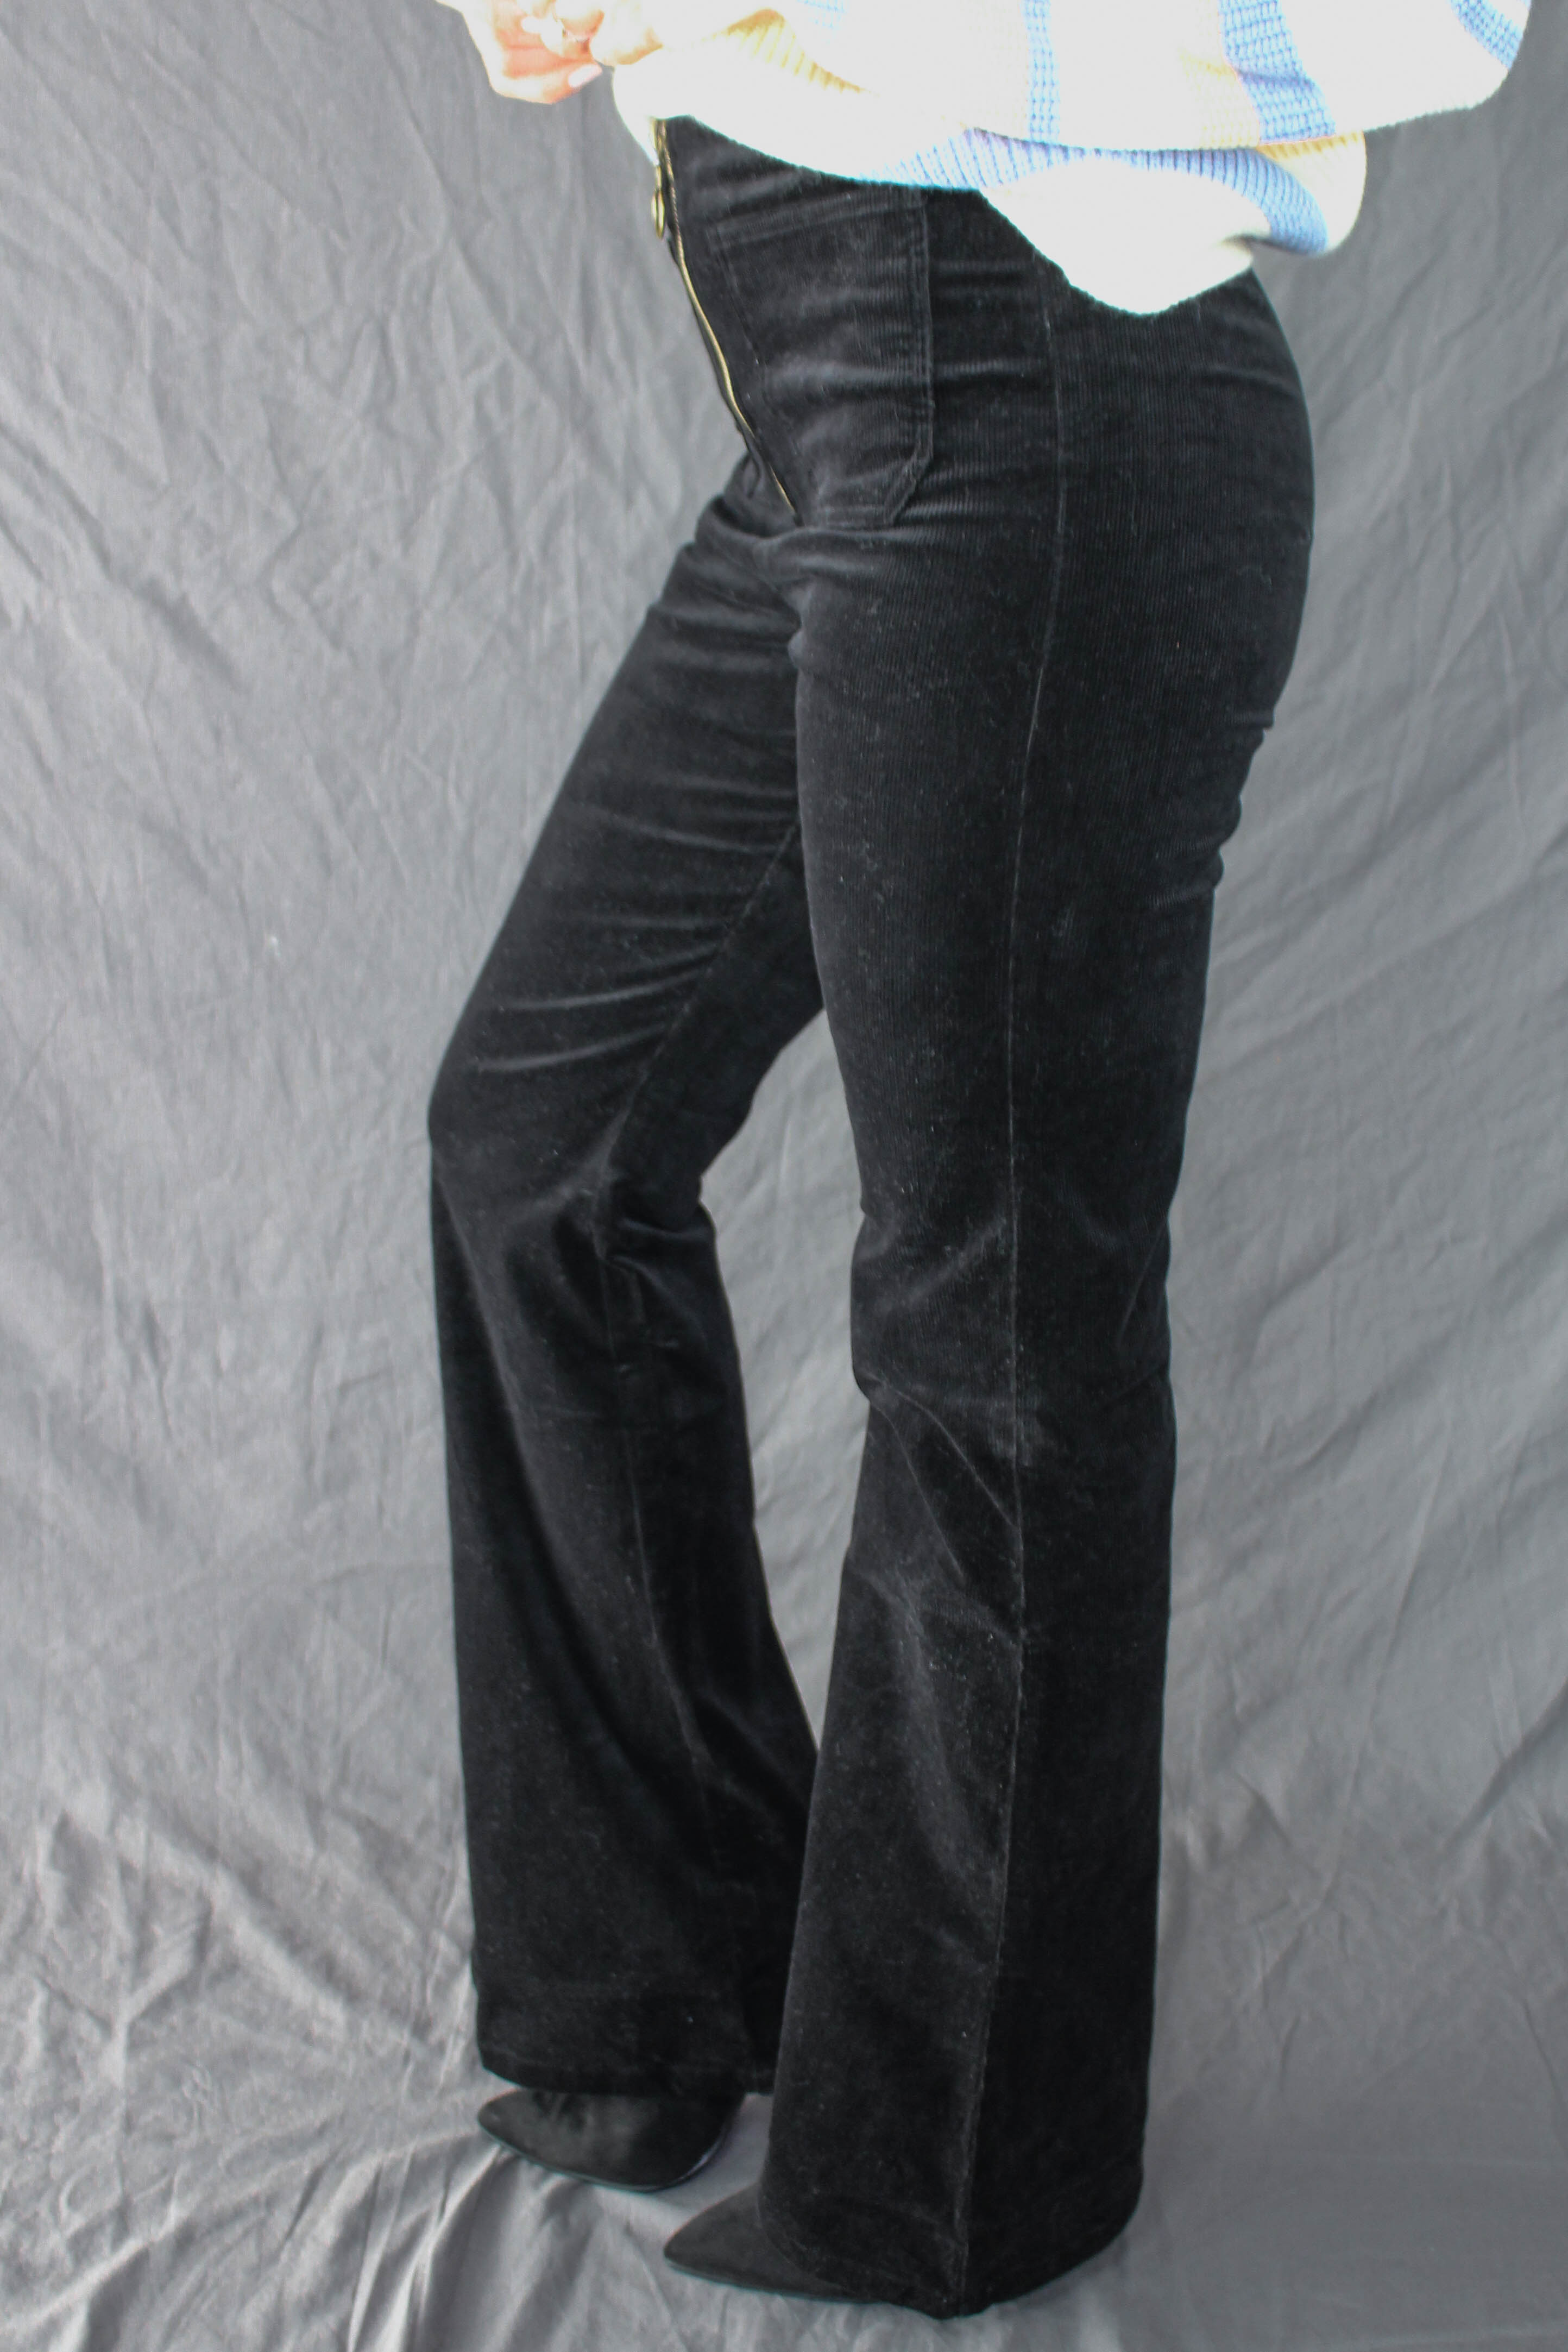 Pinehill Corduroy Pants